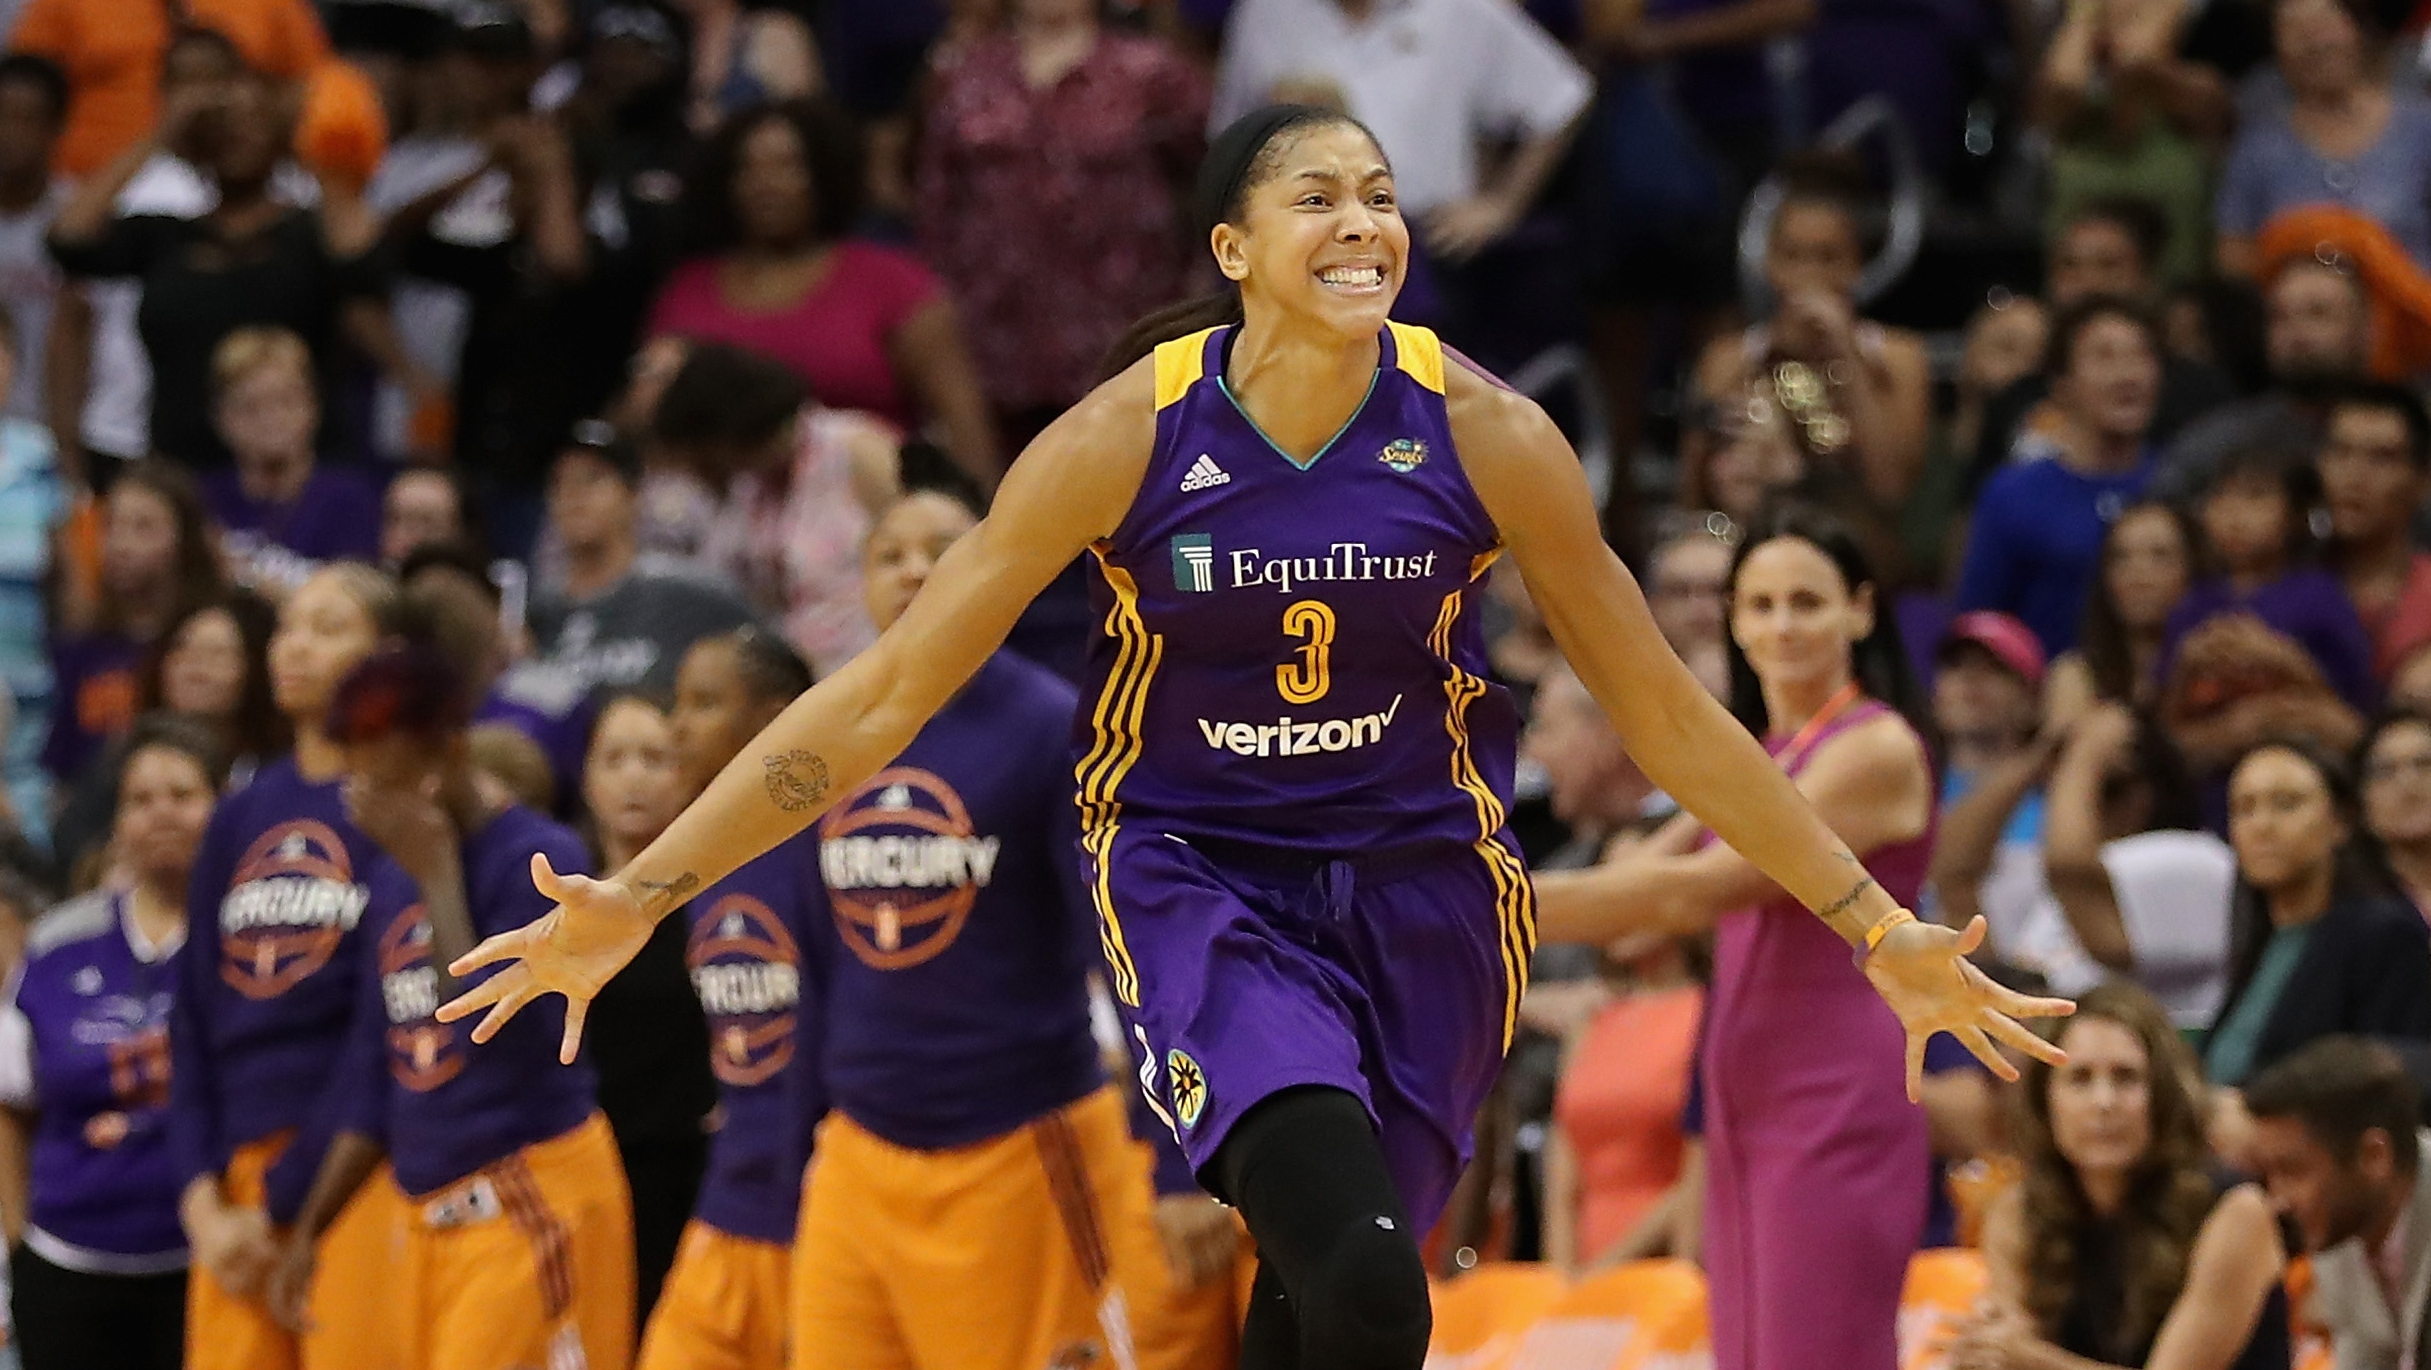 Minnesota Lynx and Los Angeles Sparks return to the WNBA Finals after semifinals sweeps